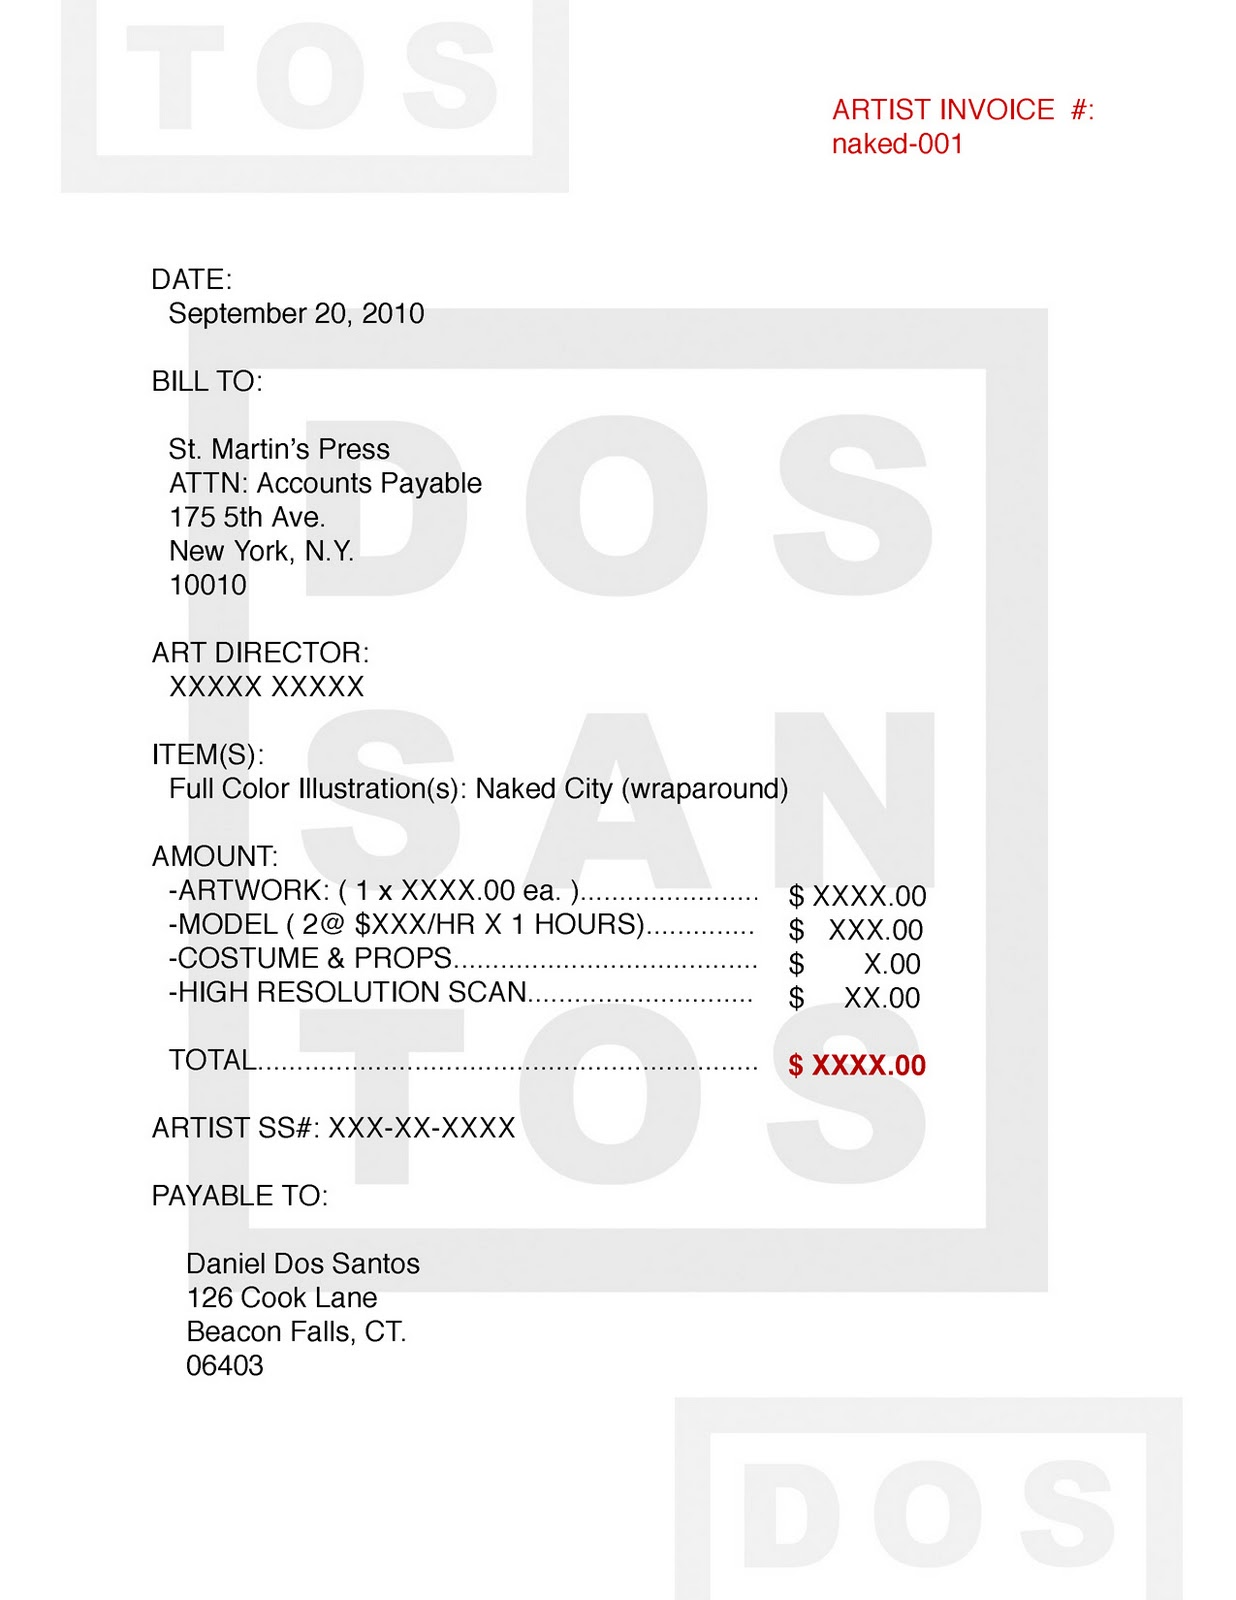 Totallocalus  Pleasing Muddy Colors Invoices With Hot I Believe That This Format Contains All The Pertinent Information That A Good Invoice Should Have And Can Serve As A Decent Template For Your Own With Agreeable Dumpling Receipt Also Sample Money Receipt Format In Addition Western Union Money Transfer Receipt Sample And Online Receipt For Lic Premium As Well As Receipt Of Rent Payment Template Additionally Biscuits Receipts From Muddycolorsblogspotcom With Totallocalus  Hot Muddy Colors Invoices With Agreeable I Believe That This Format Contains All The Pertinent Information That A Good Invoice Should Have And Can Serve As A Decent Template For Your Own And Pleasing Dumpling Receipt Also Sample Money Receipt Format In Addition Western Union Money Transfer Receipt Sample From Muddycolorsblogspotcom